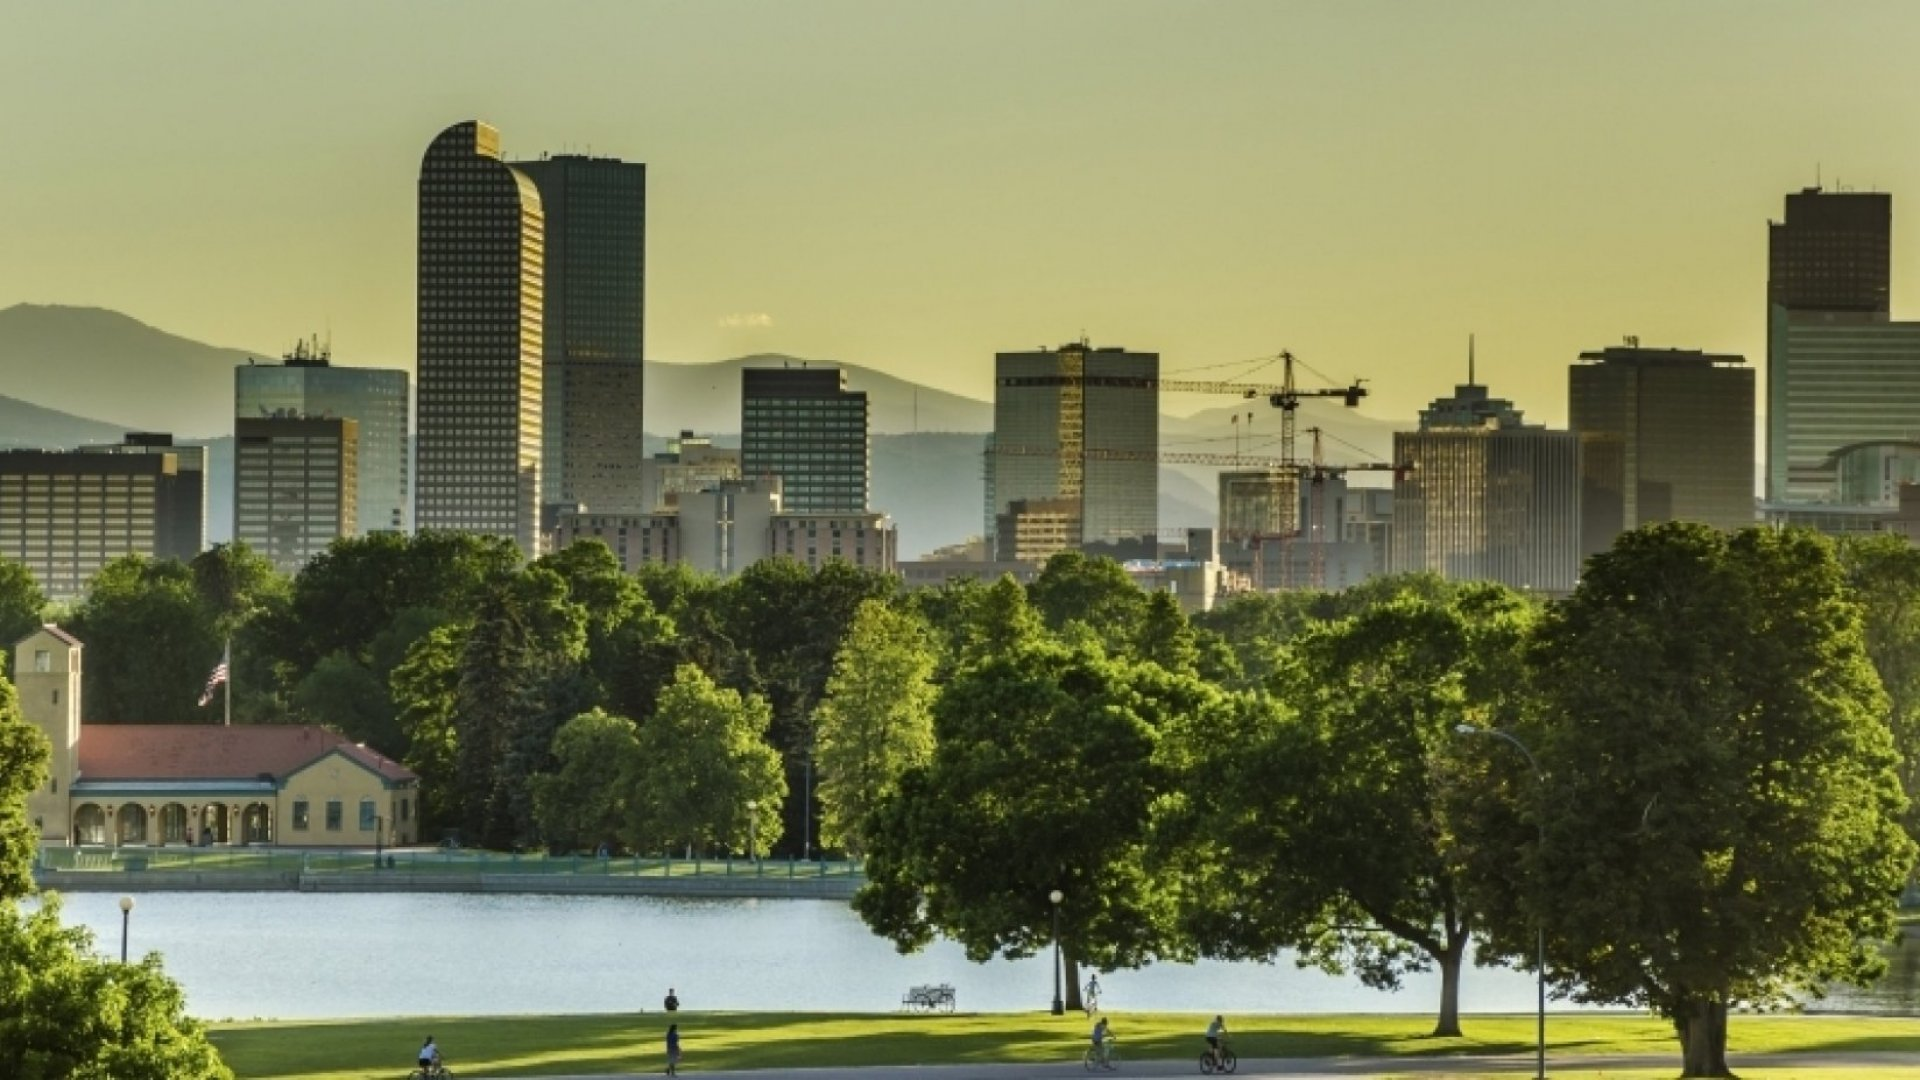 Tech Talent and Affordable Housing? These 10 Cities Have Both